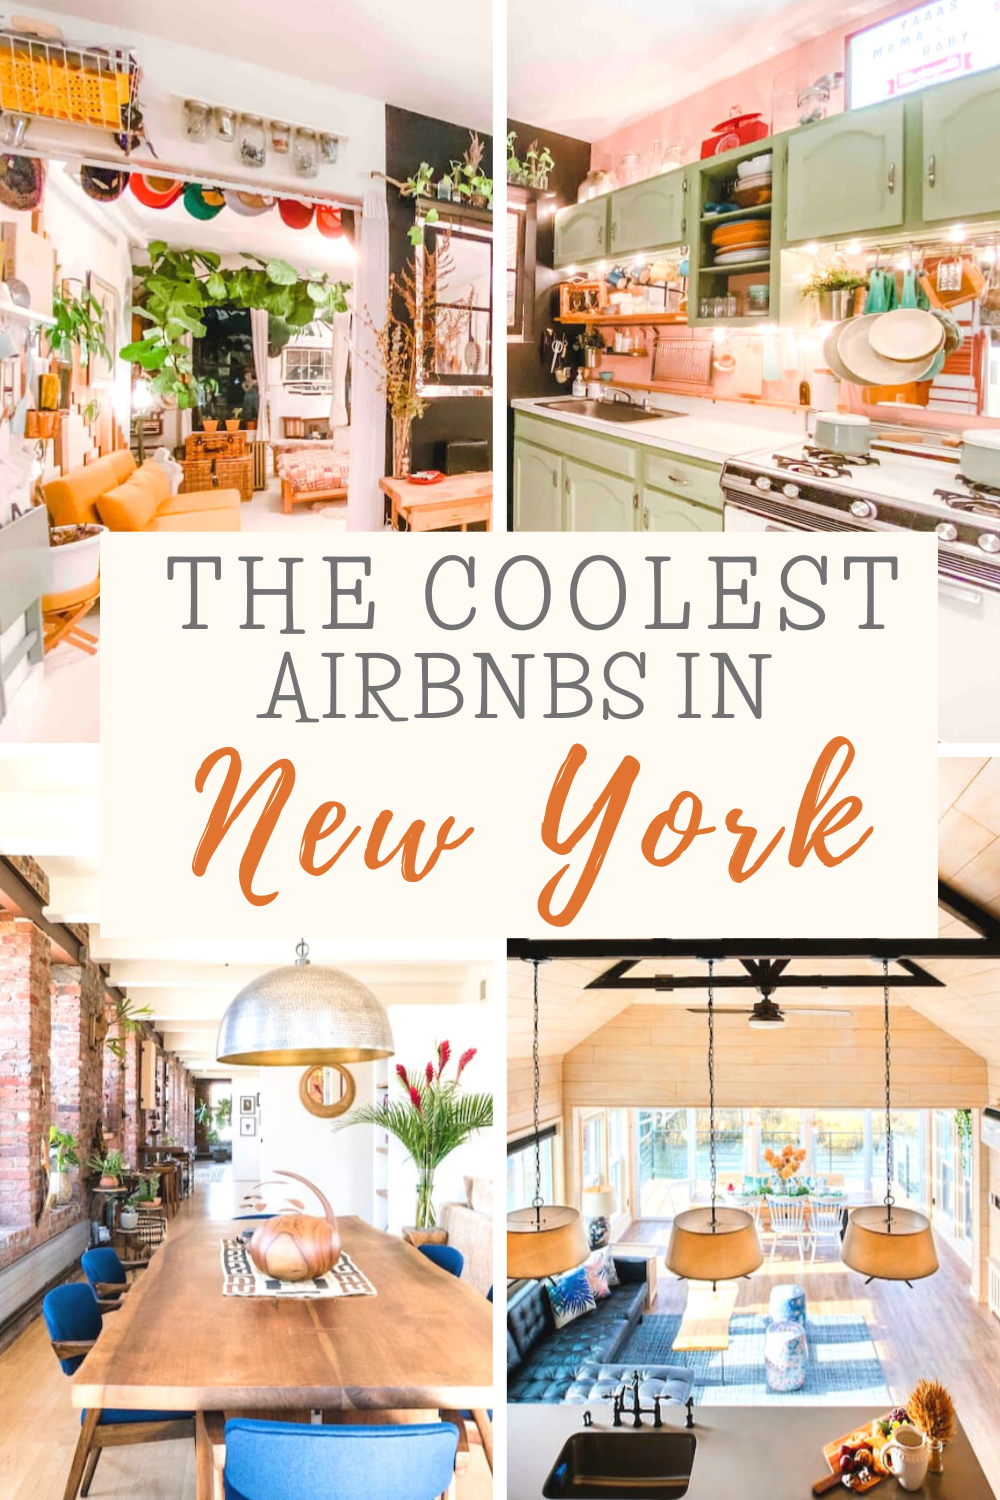 Here are The Coolest Airbnbs In New York City!